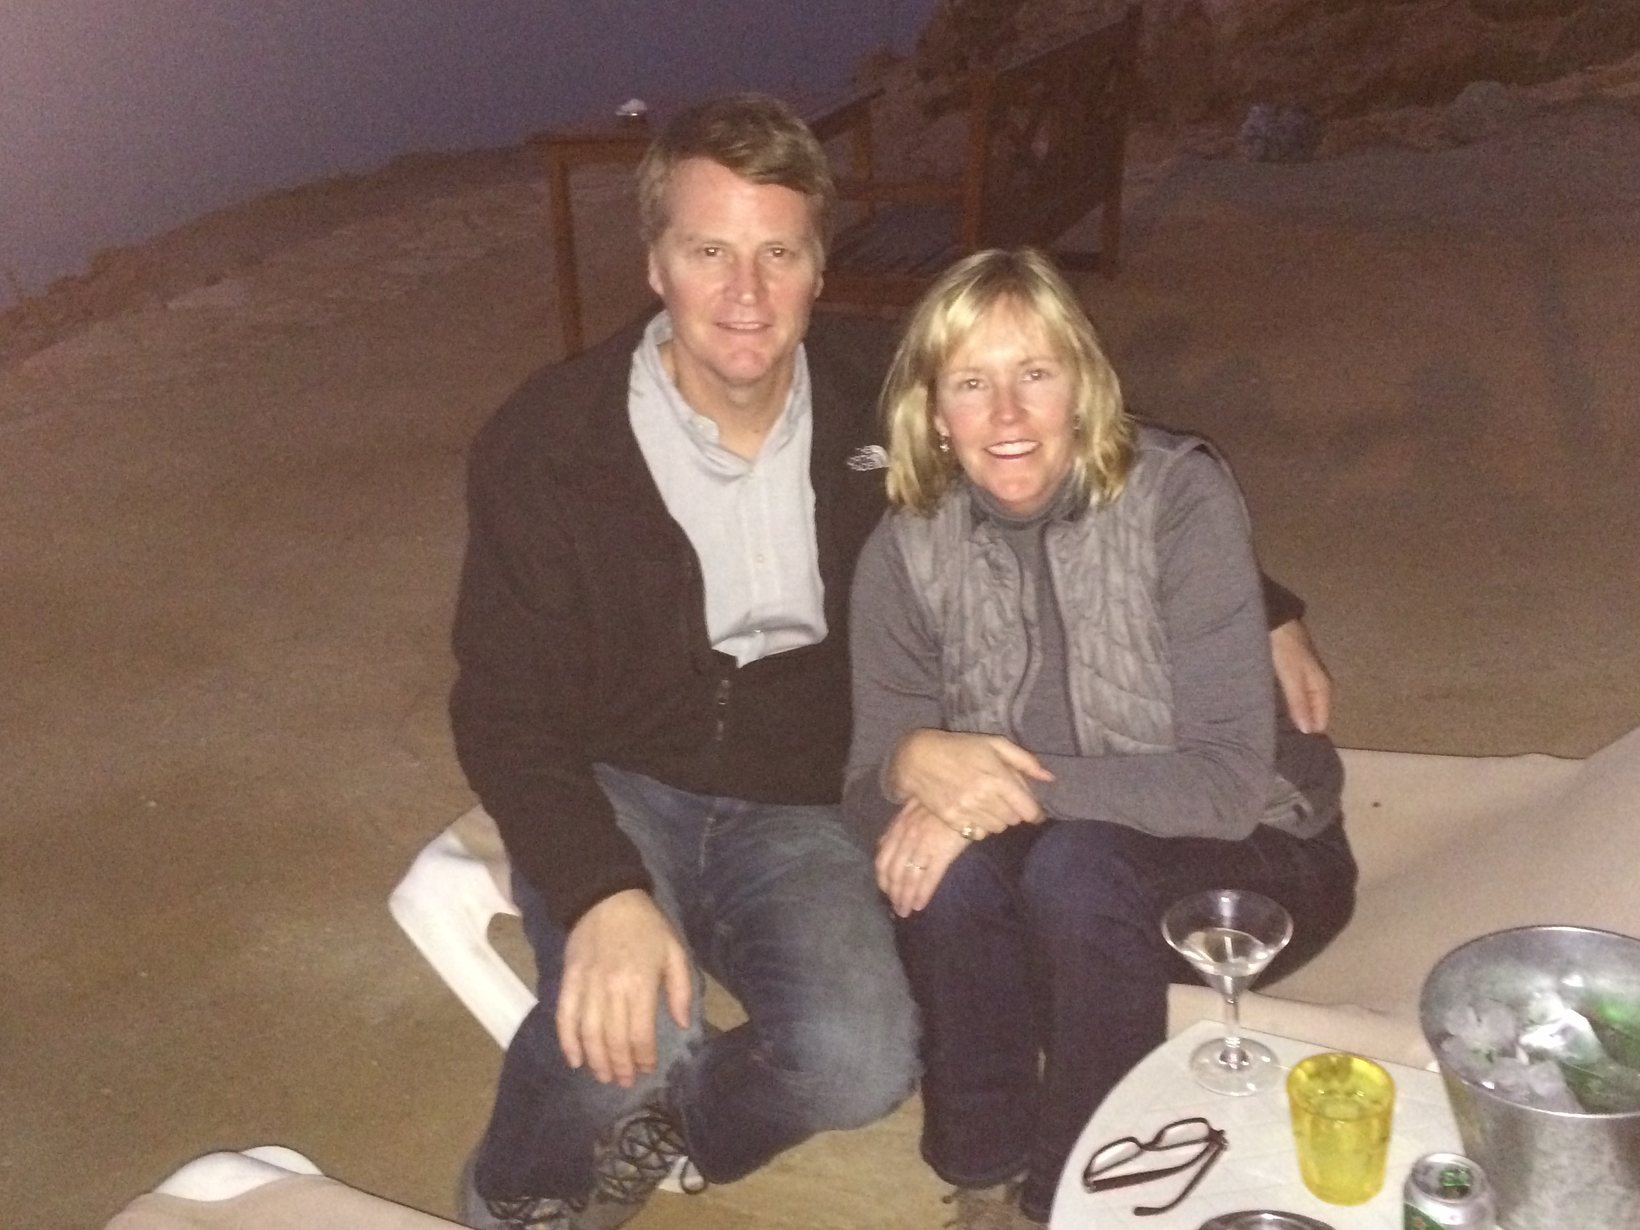 Cathy & Marc from Dallas, Texas, United States